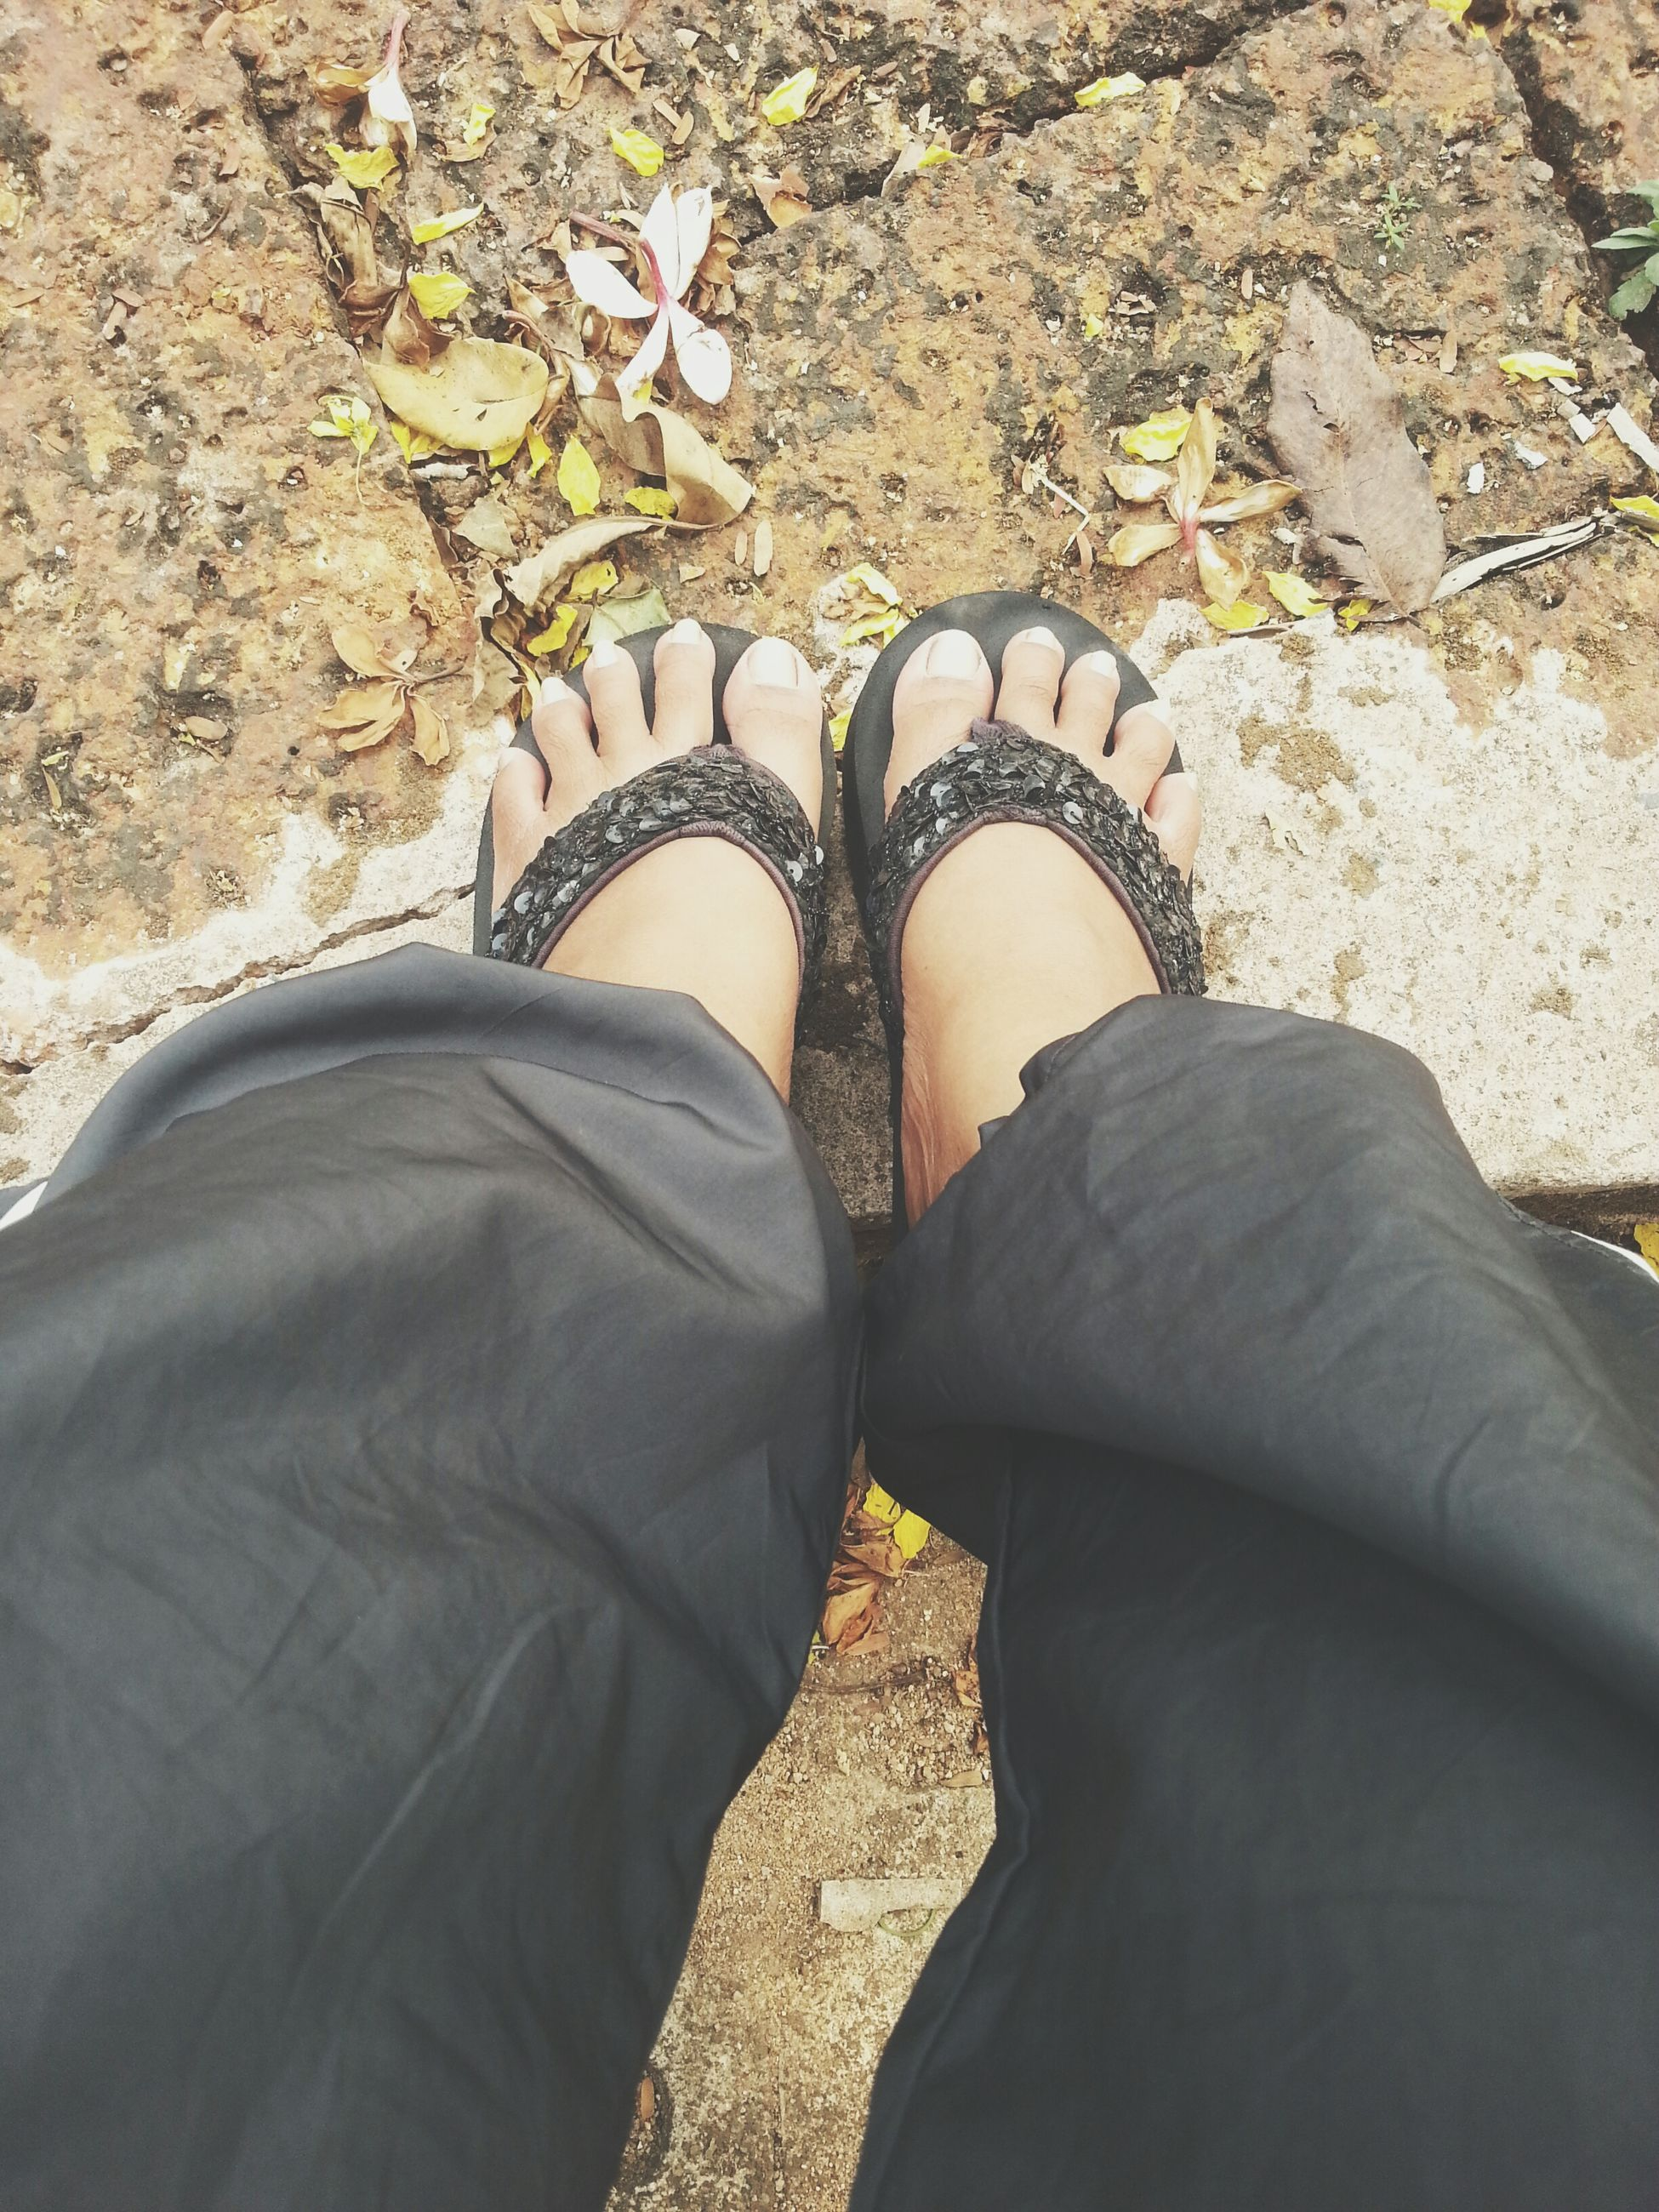 low section, person, shoe, personal perspective, lifestyles, men, high angle view, leisure activity, standing, jeans, human foot, unrecognizable person, casual clothing, outdoors, footwear, day, rock - object